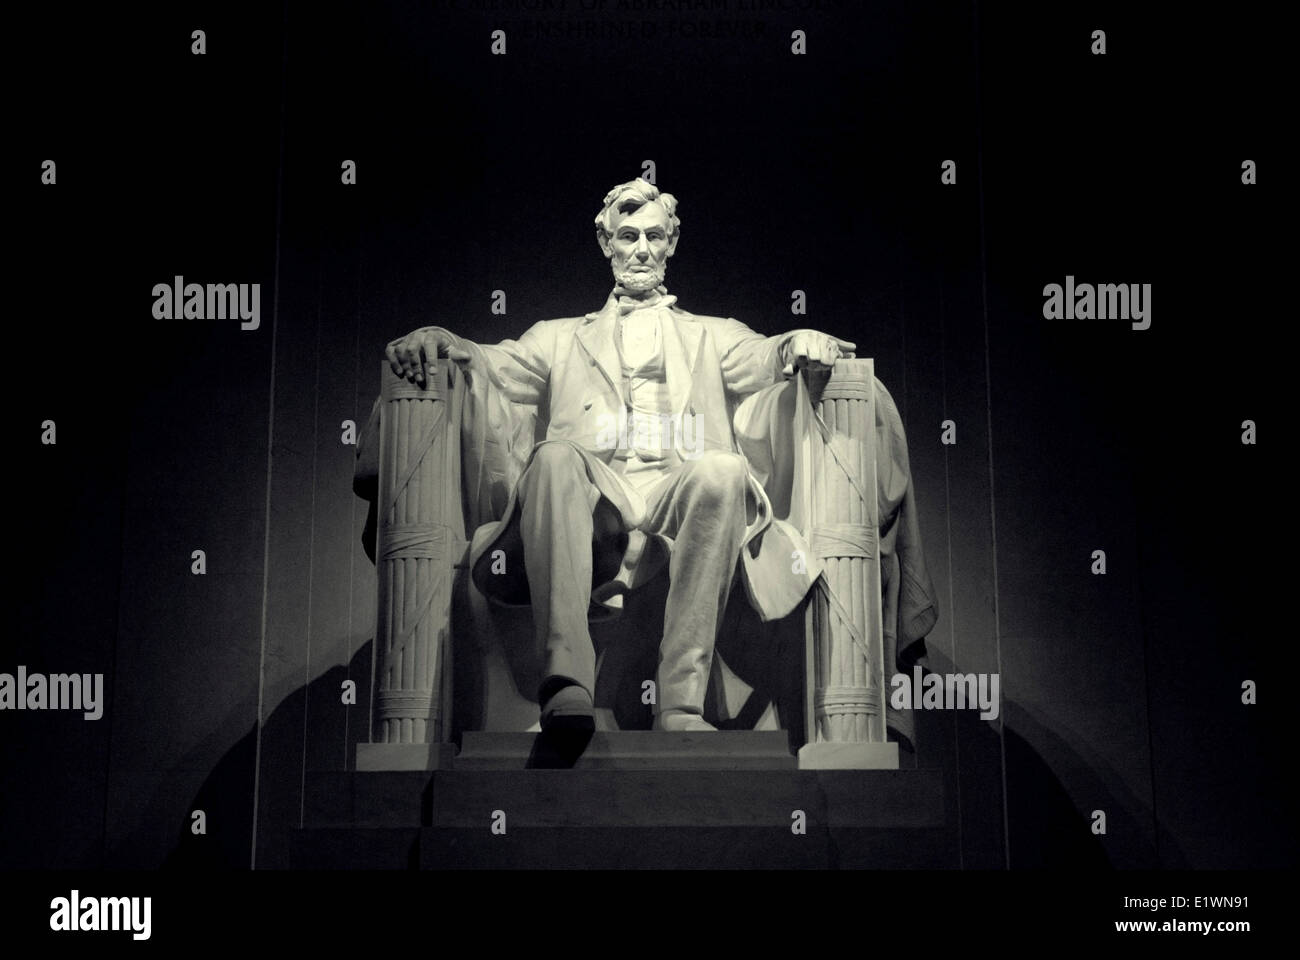 A close up frontal view of the Lincoln Statue in the Lincoln Memorial, Washington DC - Stock Image